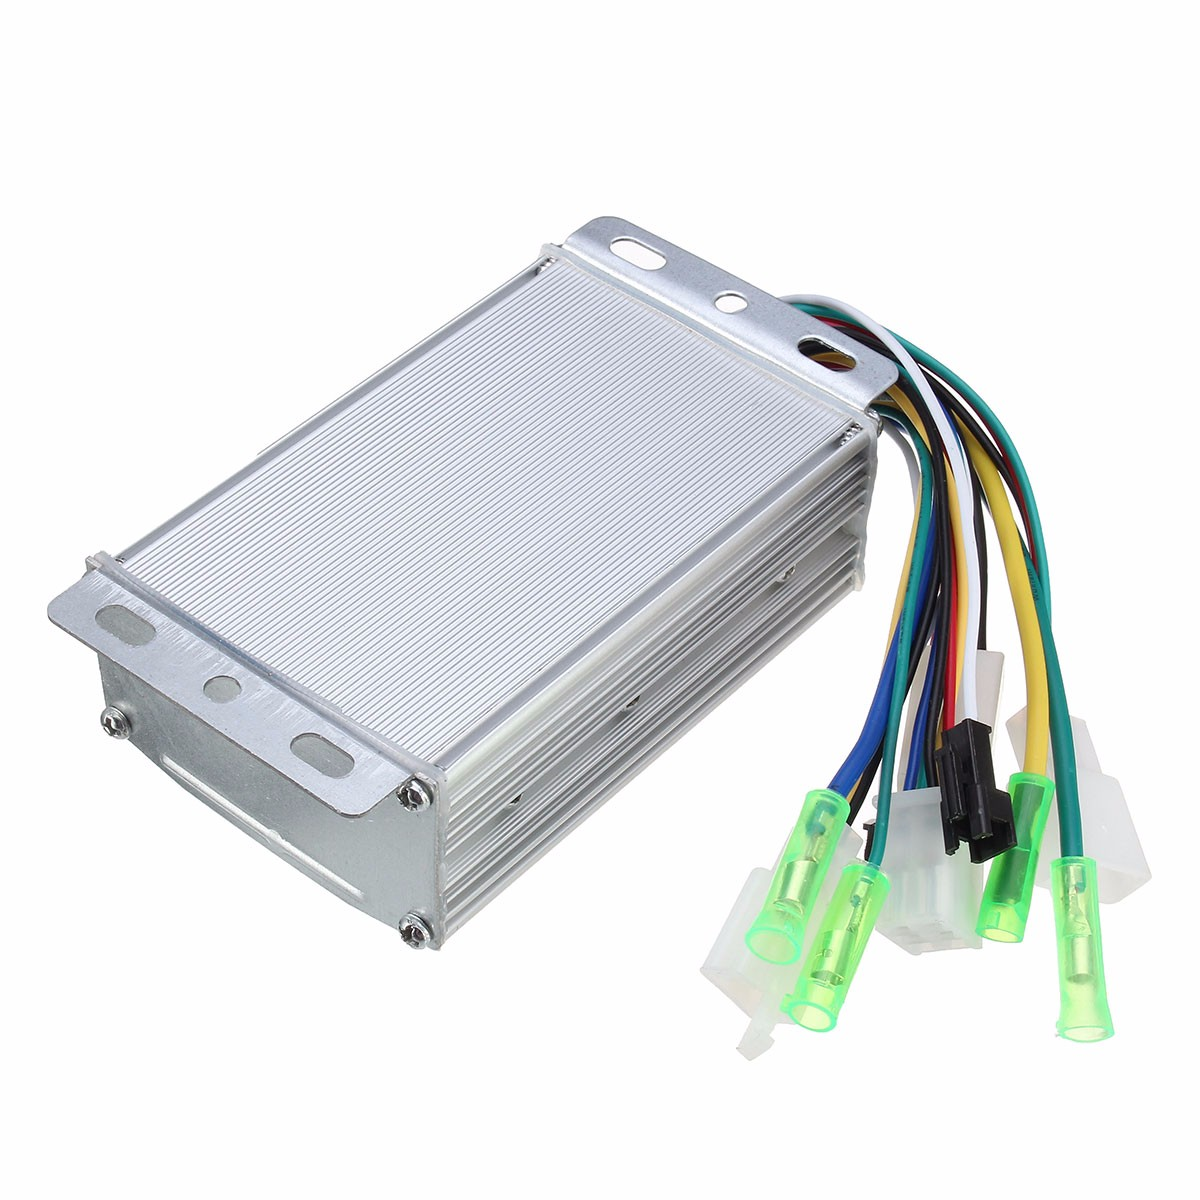 With//Without Hall Sensor Brushless Motor Speed Controller For E Bicycle Scooter